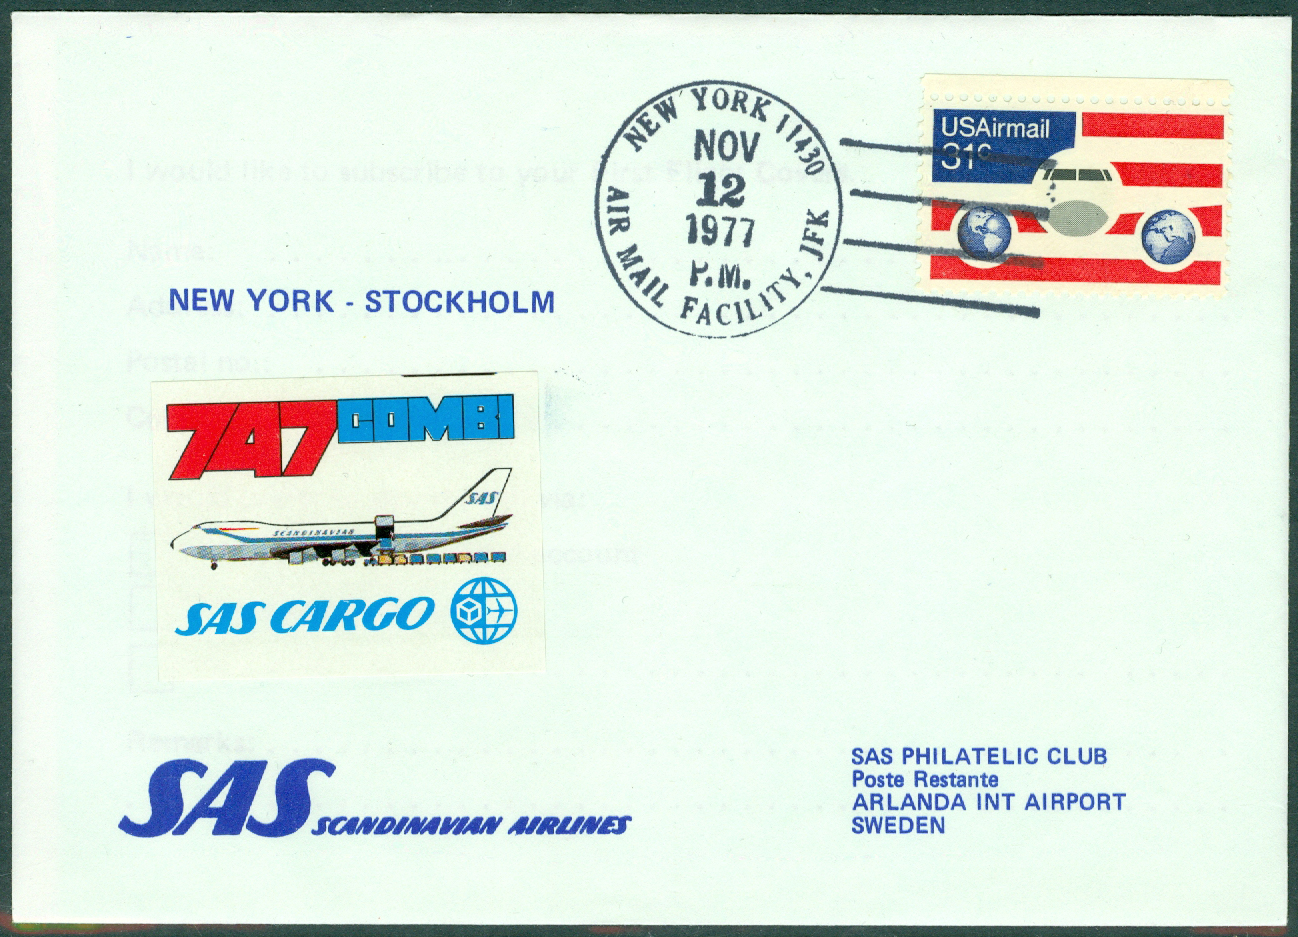 USA - 1977-11-12 - SAS Cargo 747 Combi / New York - Stockholm